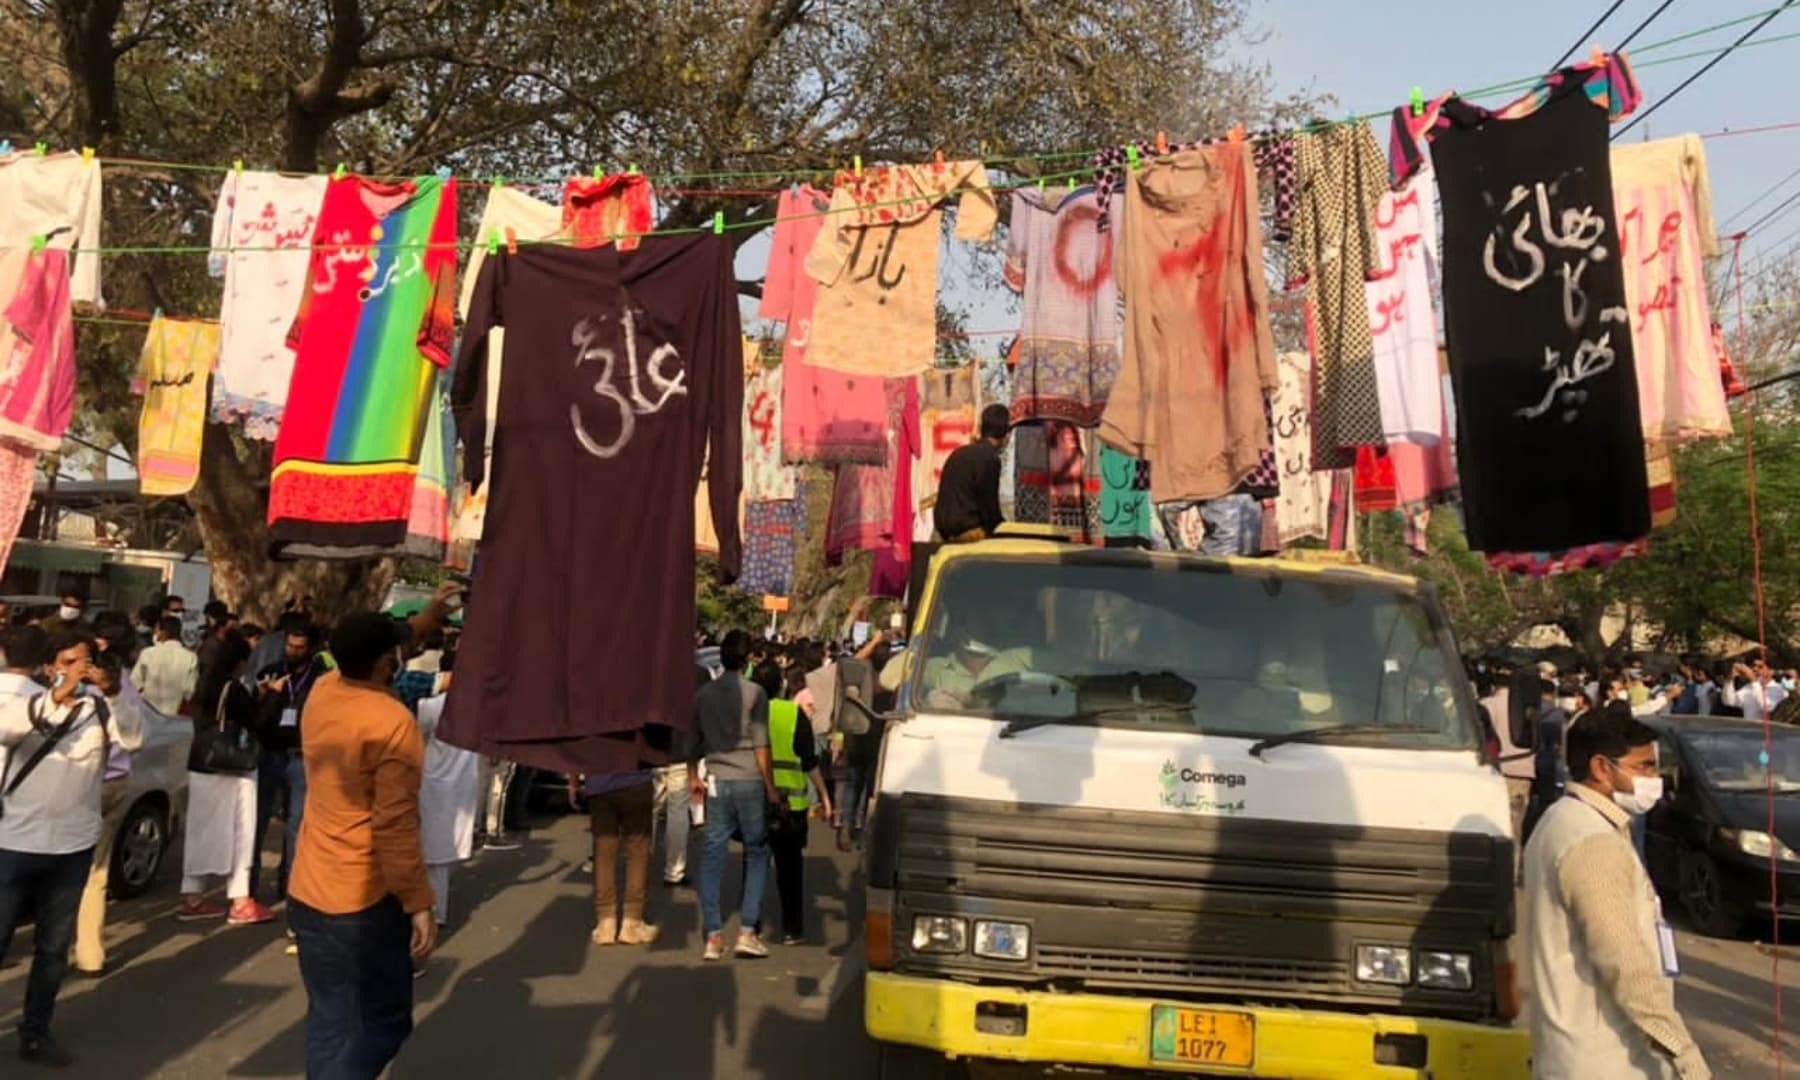 An art display is seen during an Aurat March rally in Lahore on Monday. — Imran Gabol